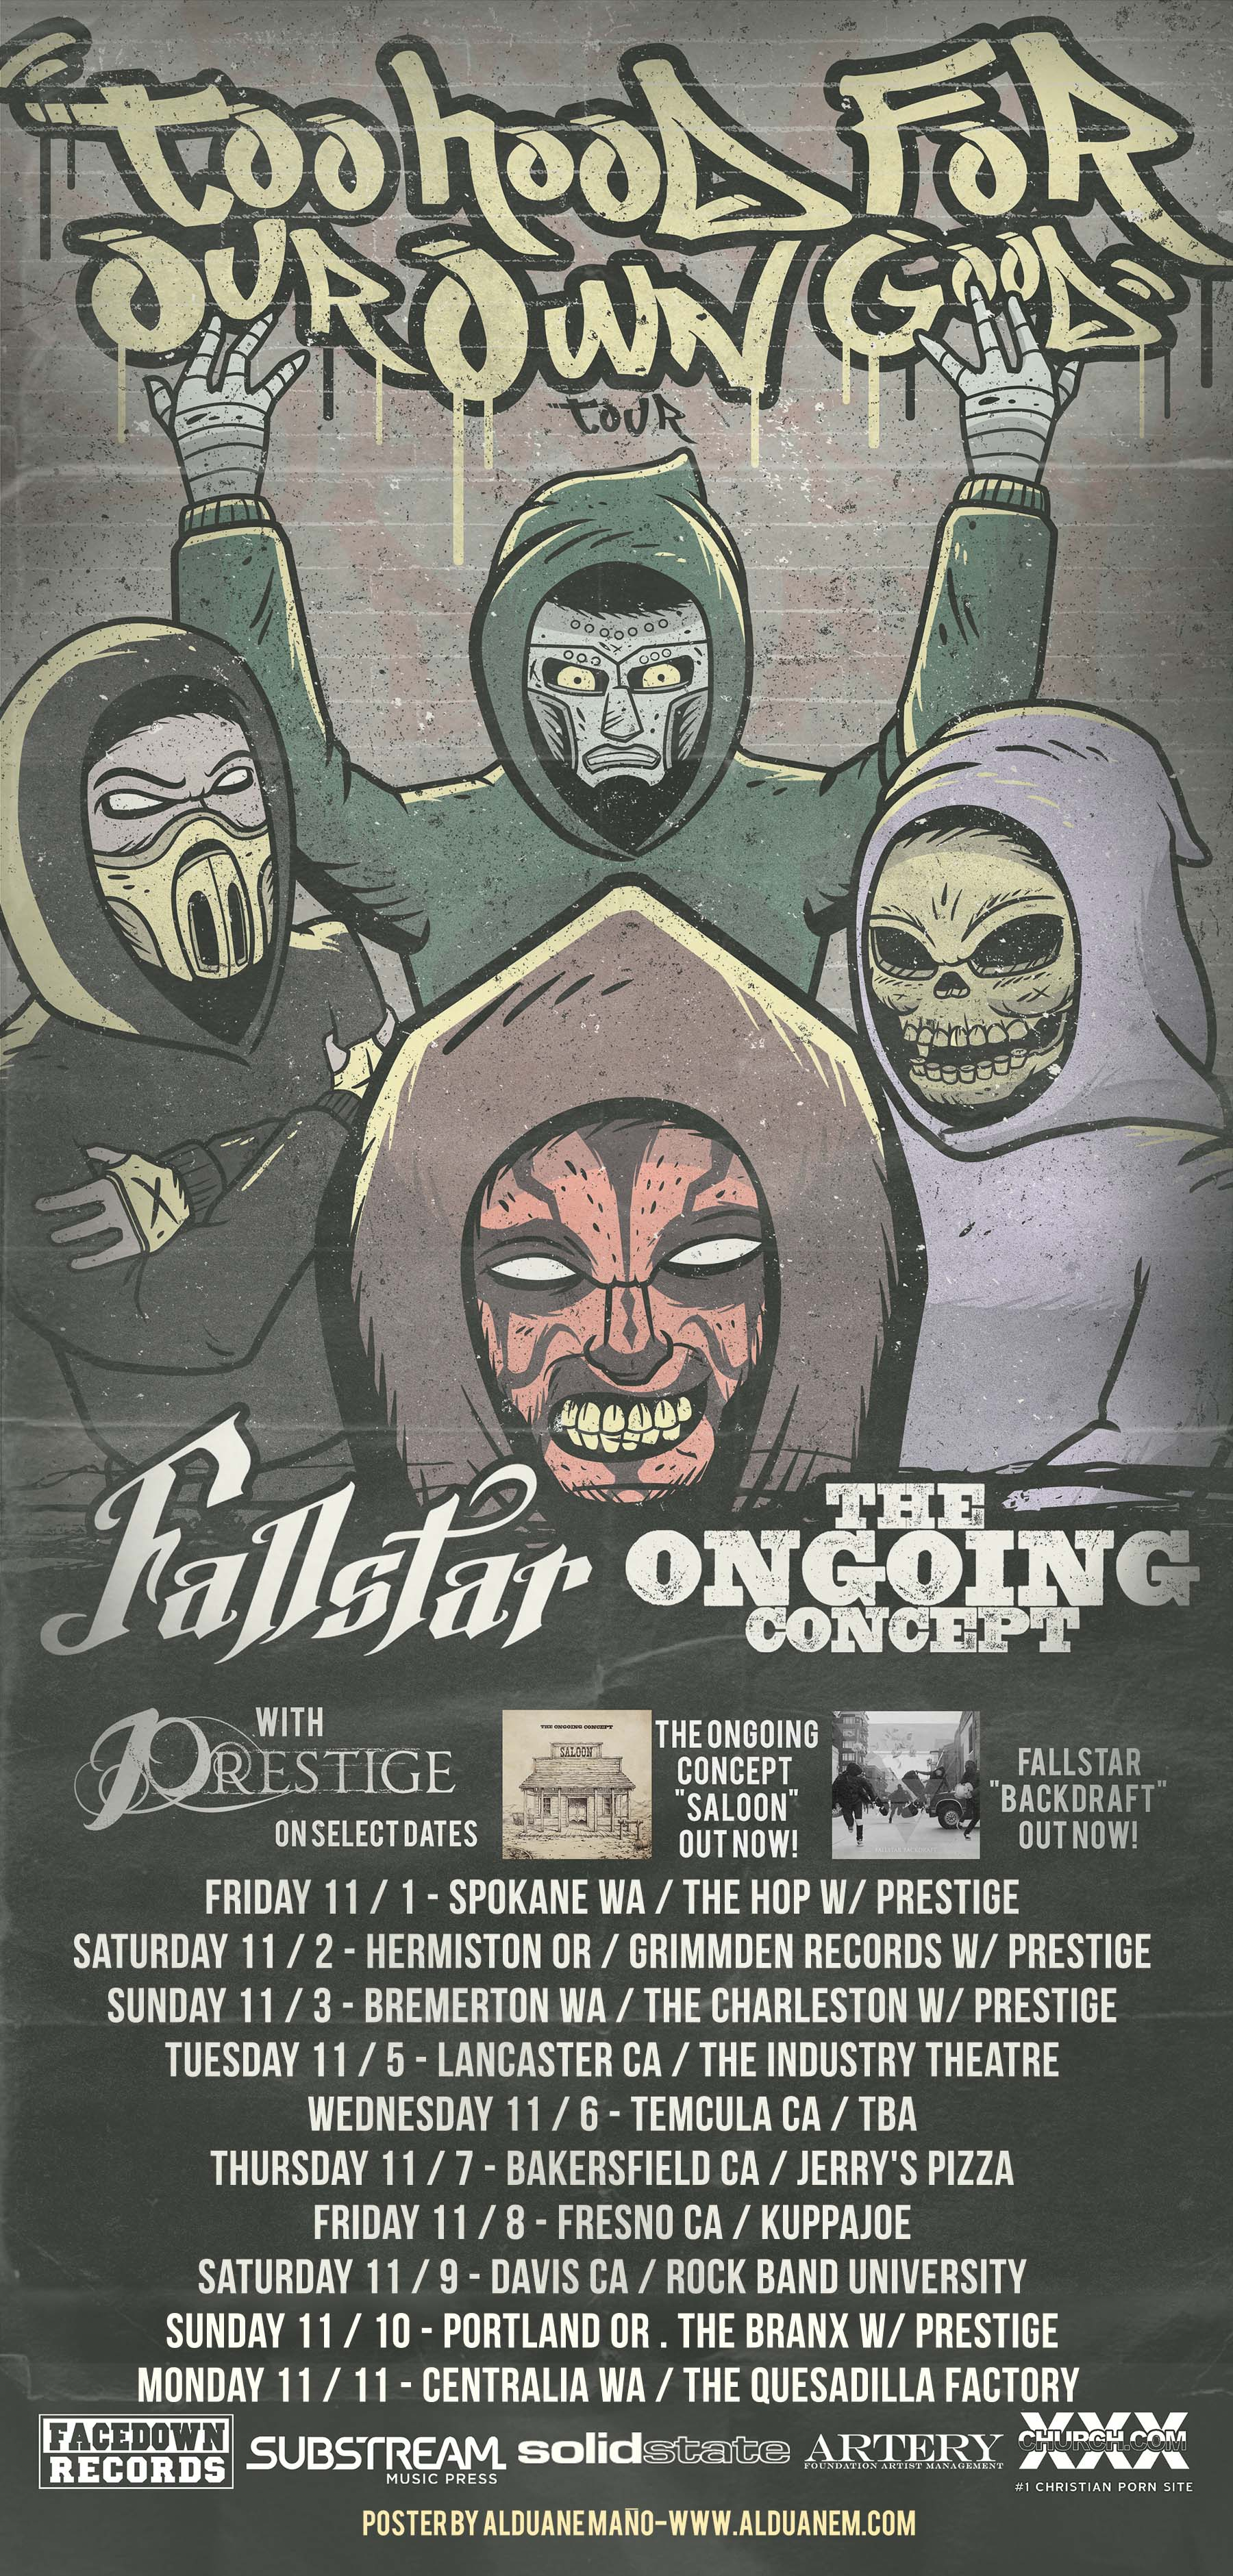 Fallstar and The Ongoing Concept Tour